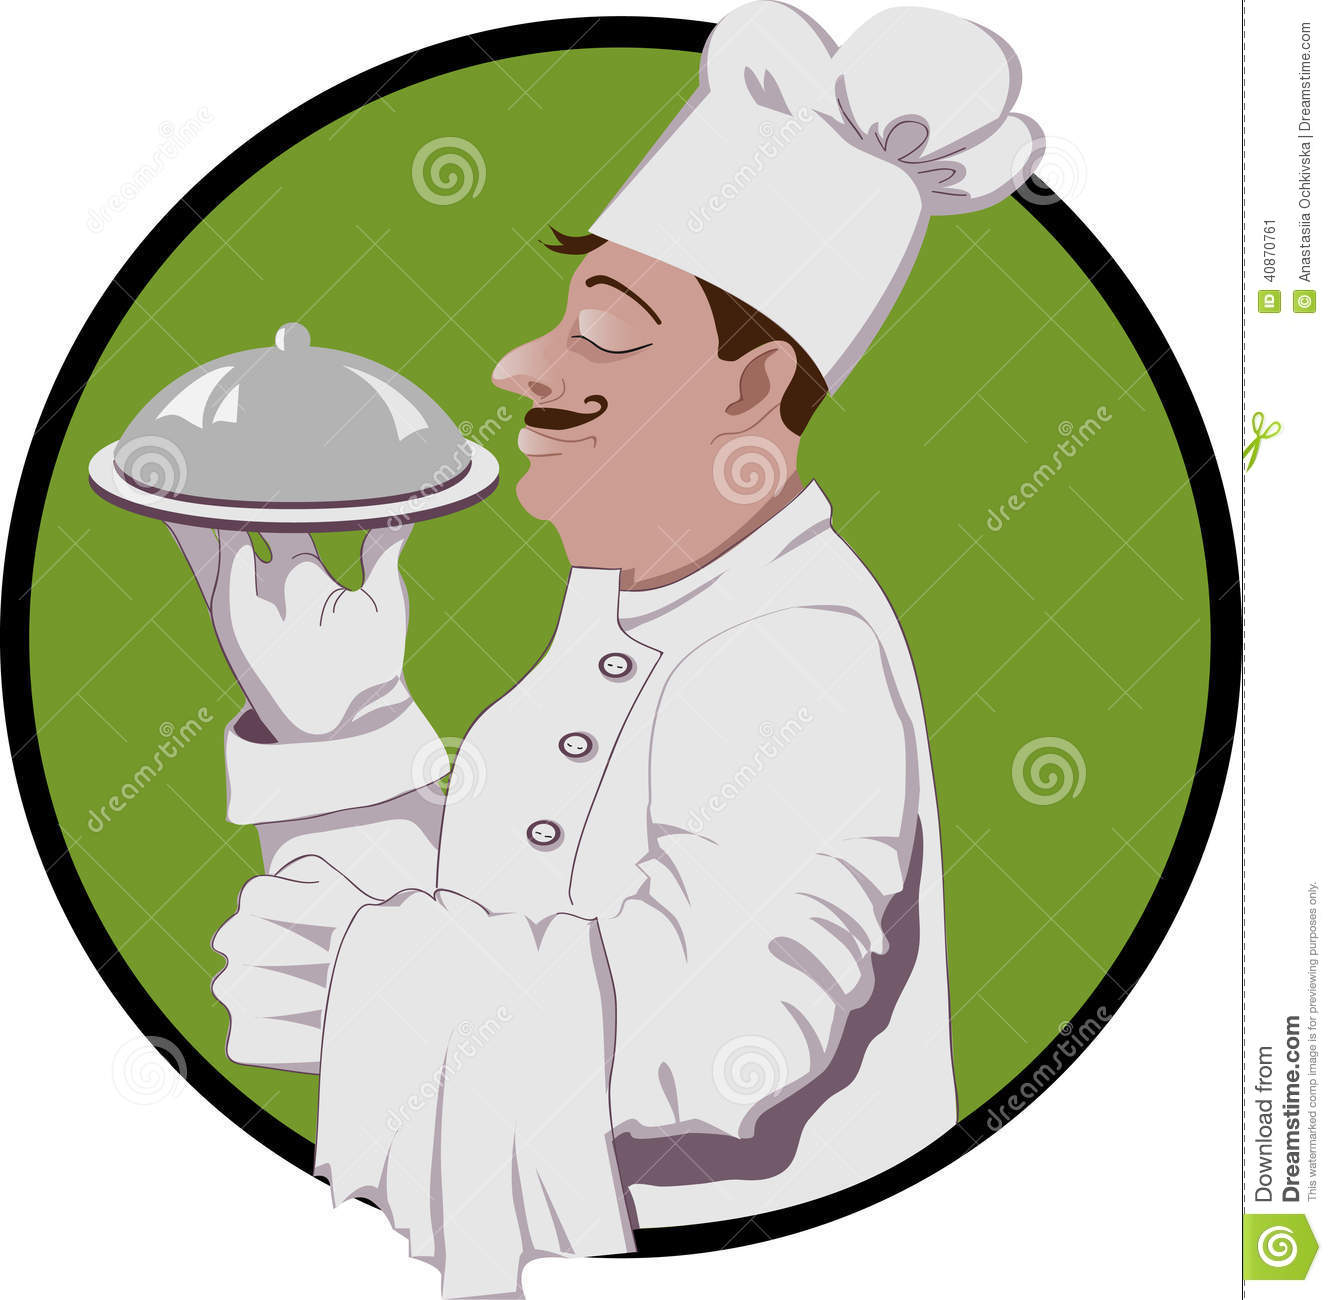 Mr chef clipart image black and white library Master Chef Logo Royalty Free Stock Images - Image: 26385339 image black and white library